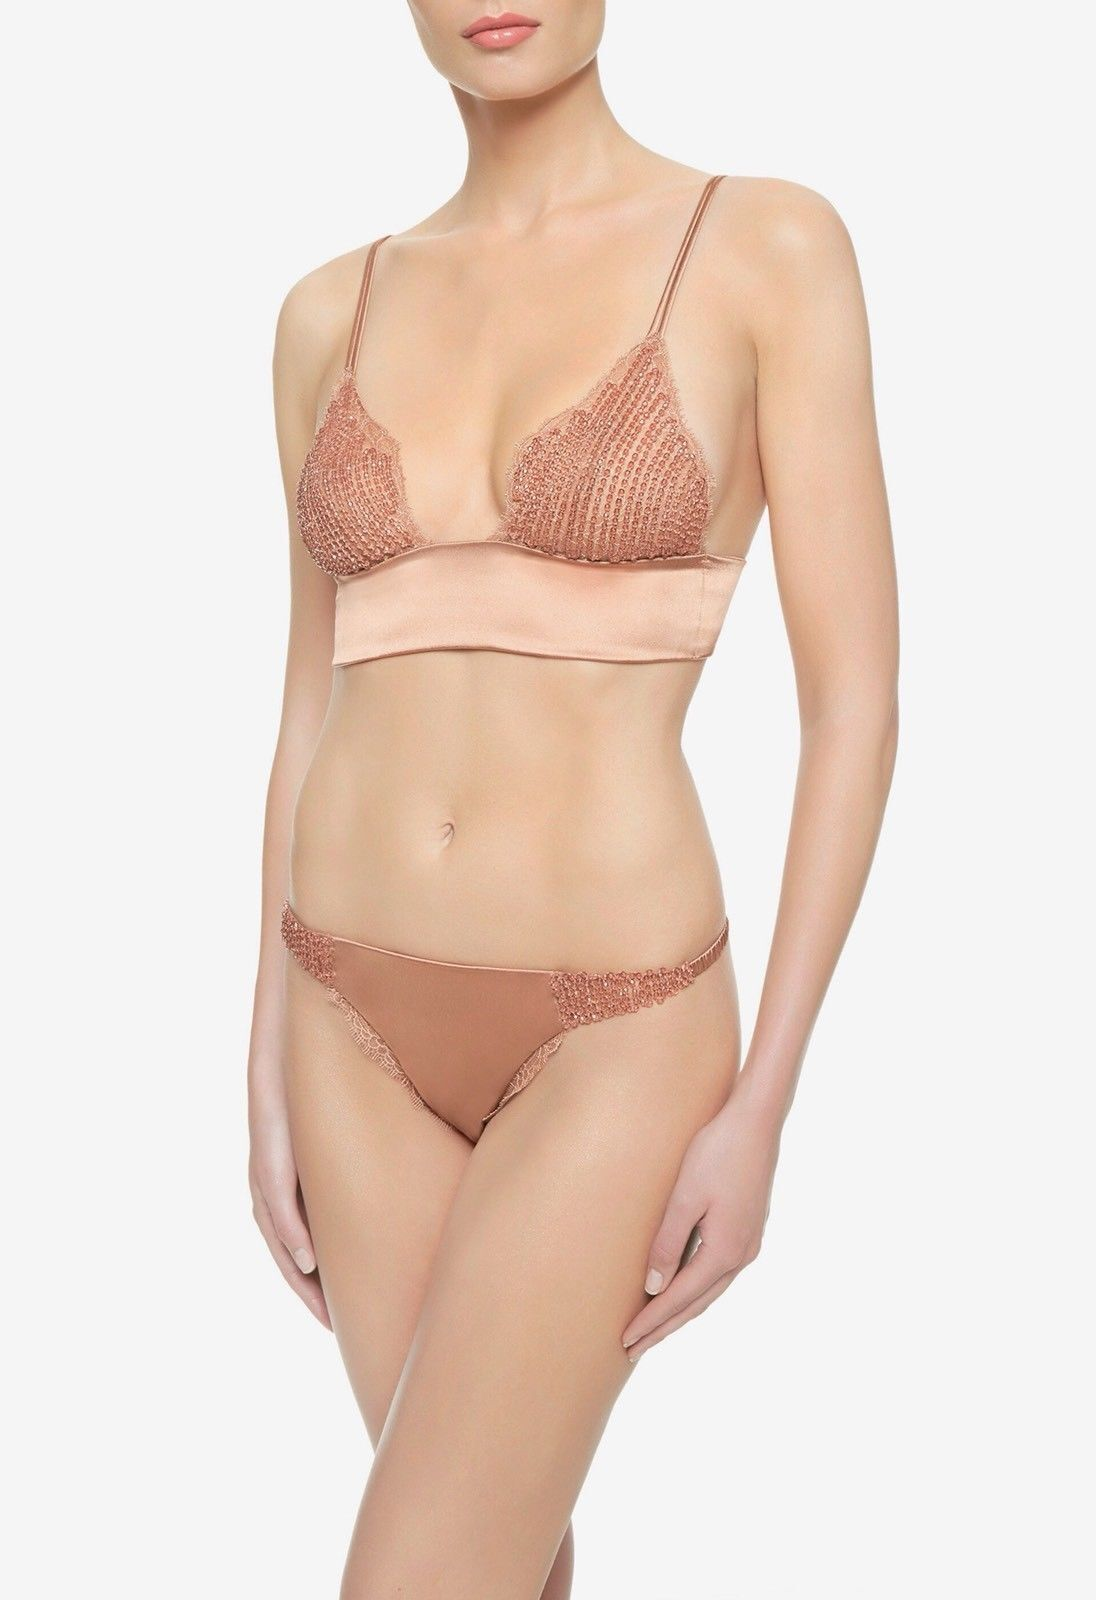 La Perla Glimmering Soutache Beaded Silk Triangle Bra & Thong Set - Size IT 4